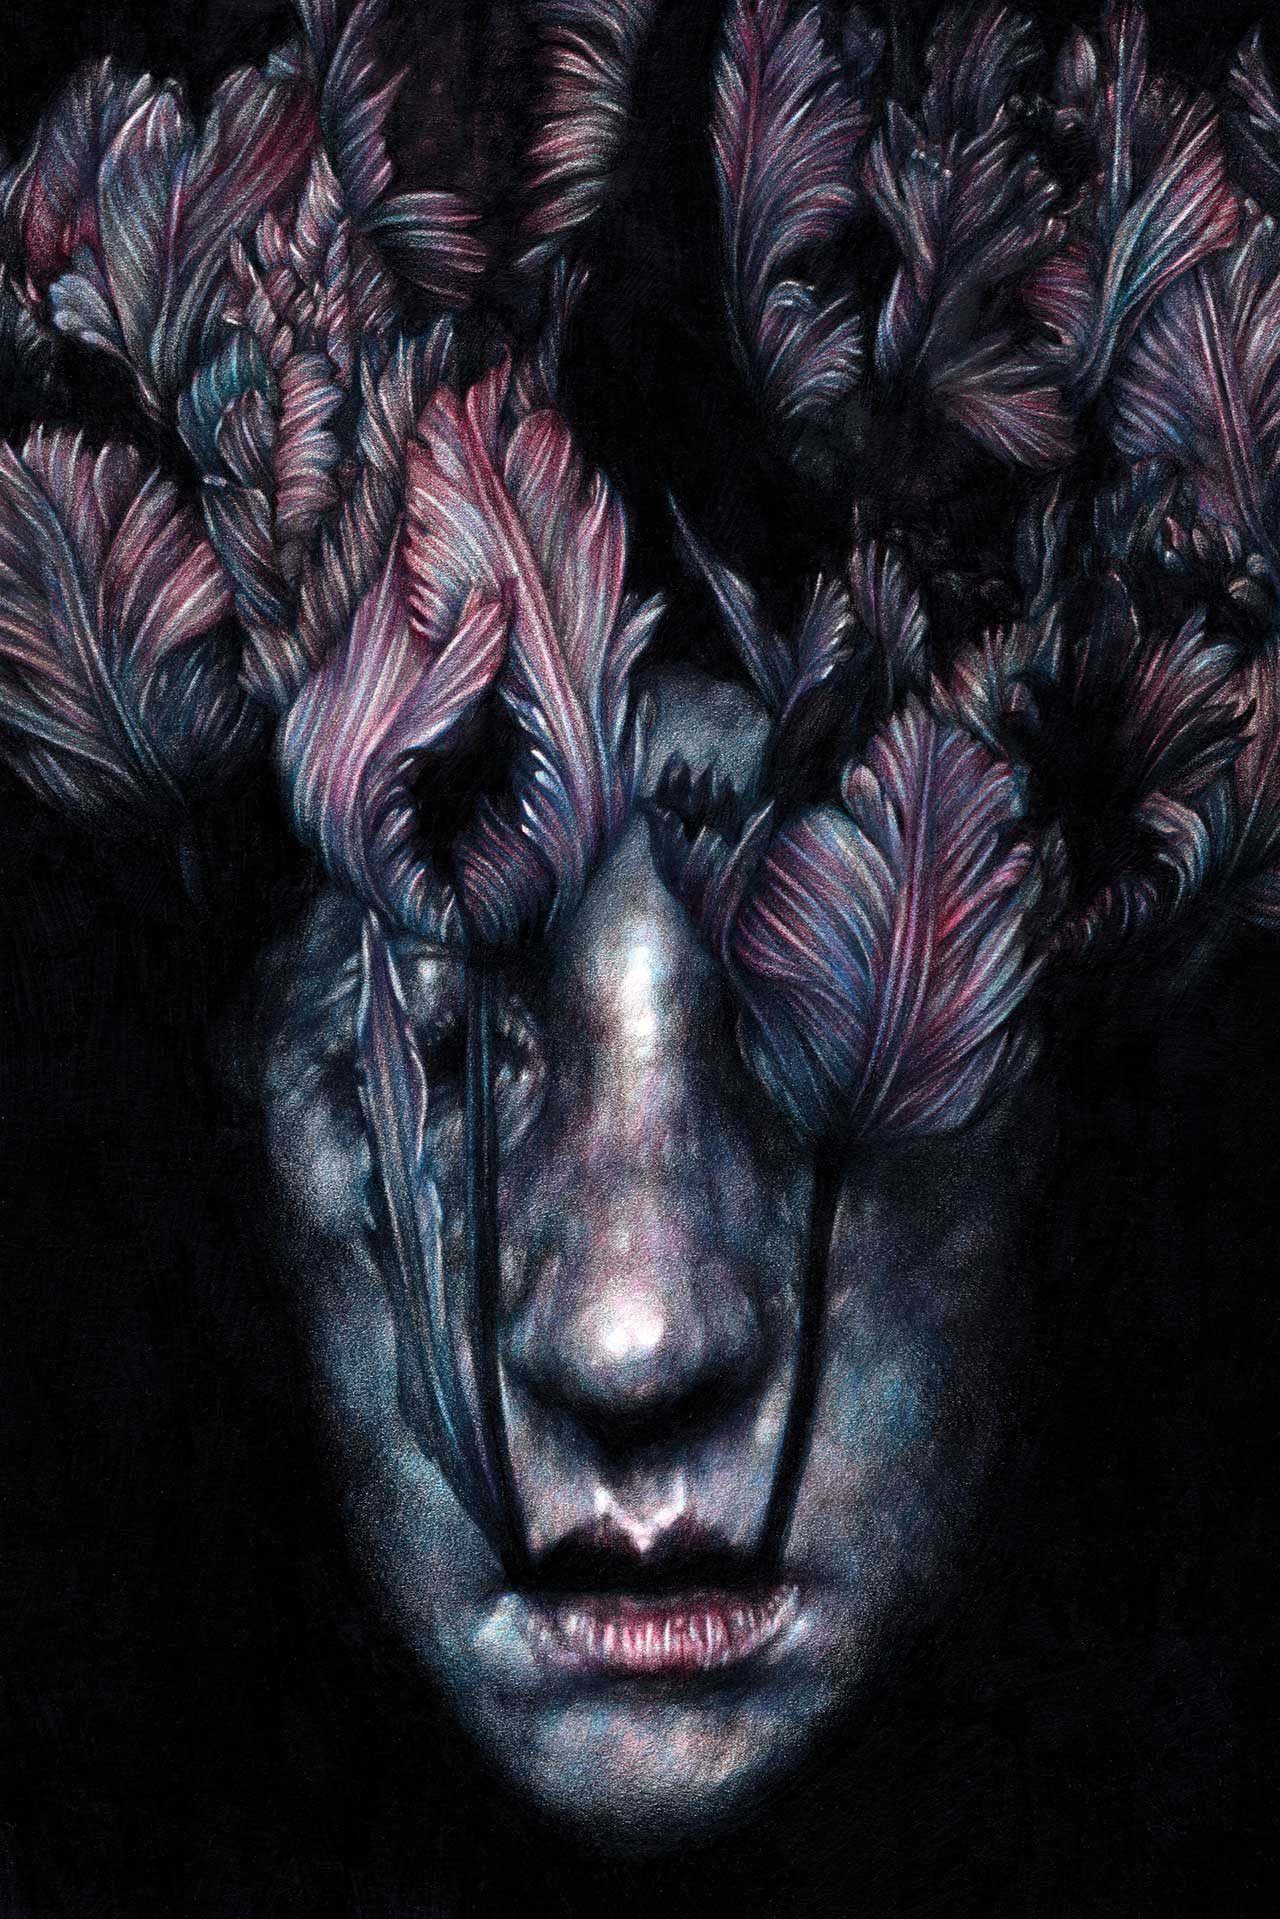 Marco Mazzoni, Reverist, 2016. Colored pencils on paper, 30 x 20cm © Marco Mazzoni.